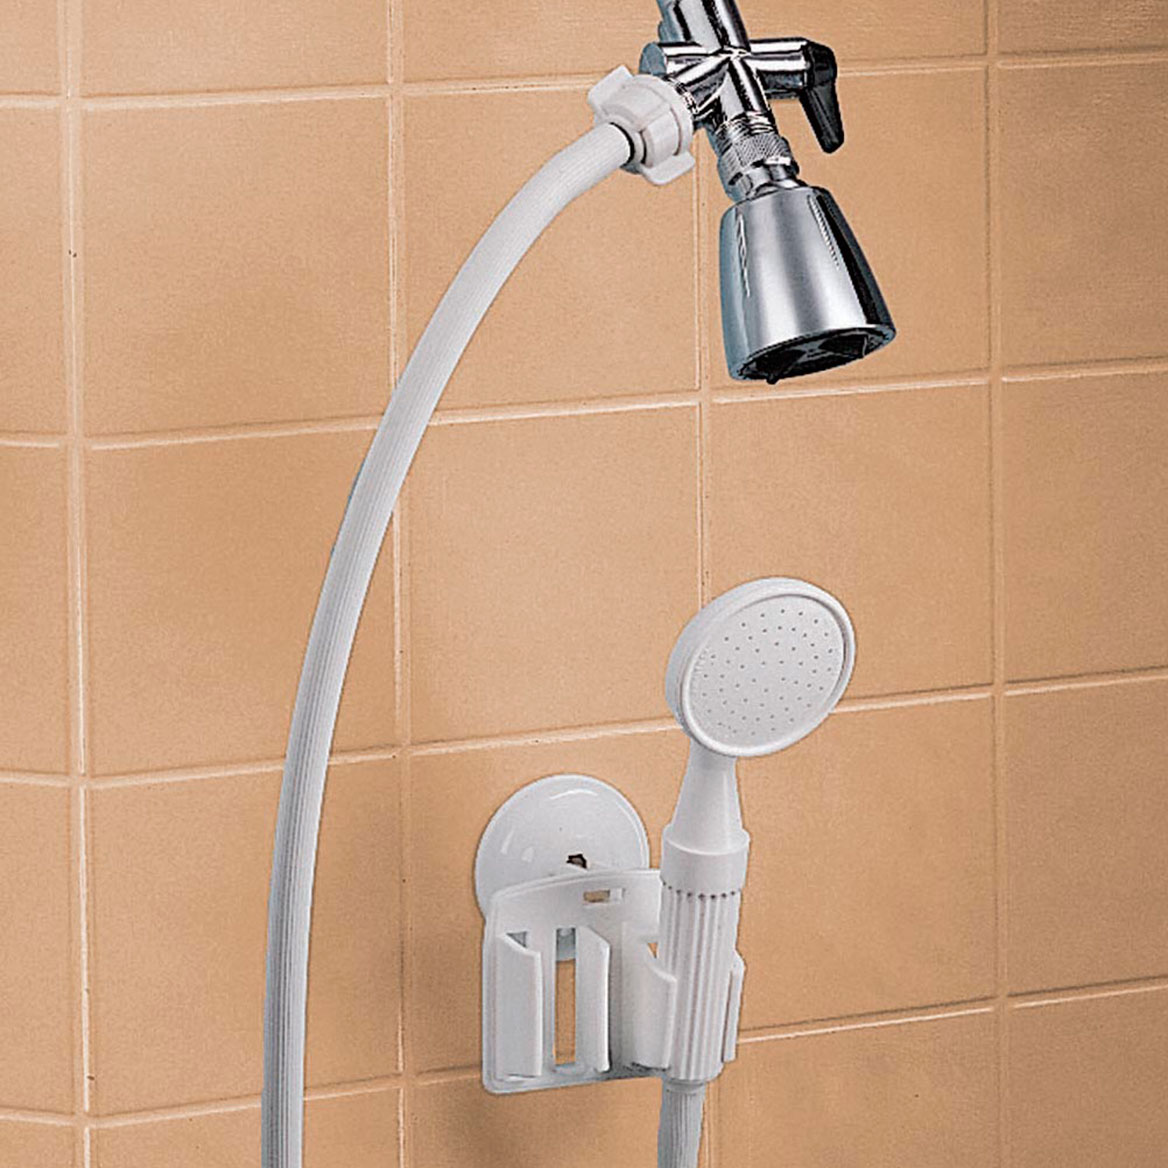 Detachable Hand Held Shower Sprayer